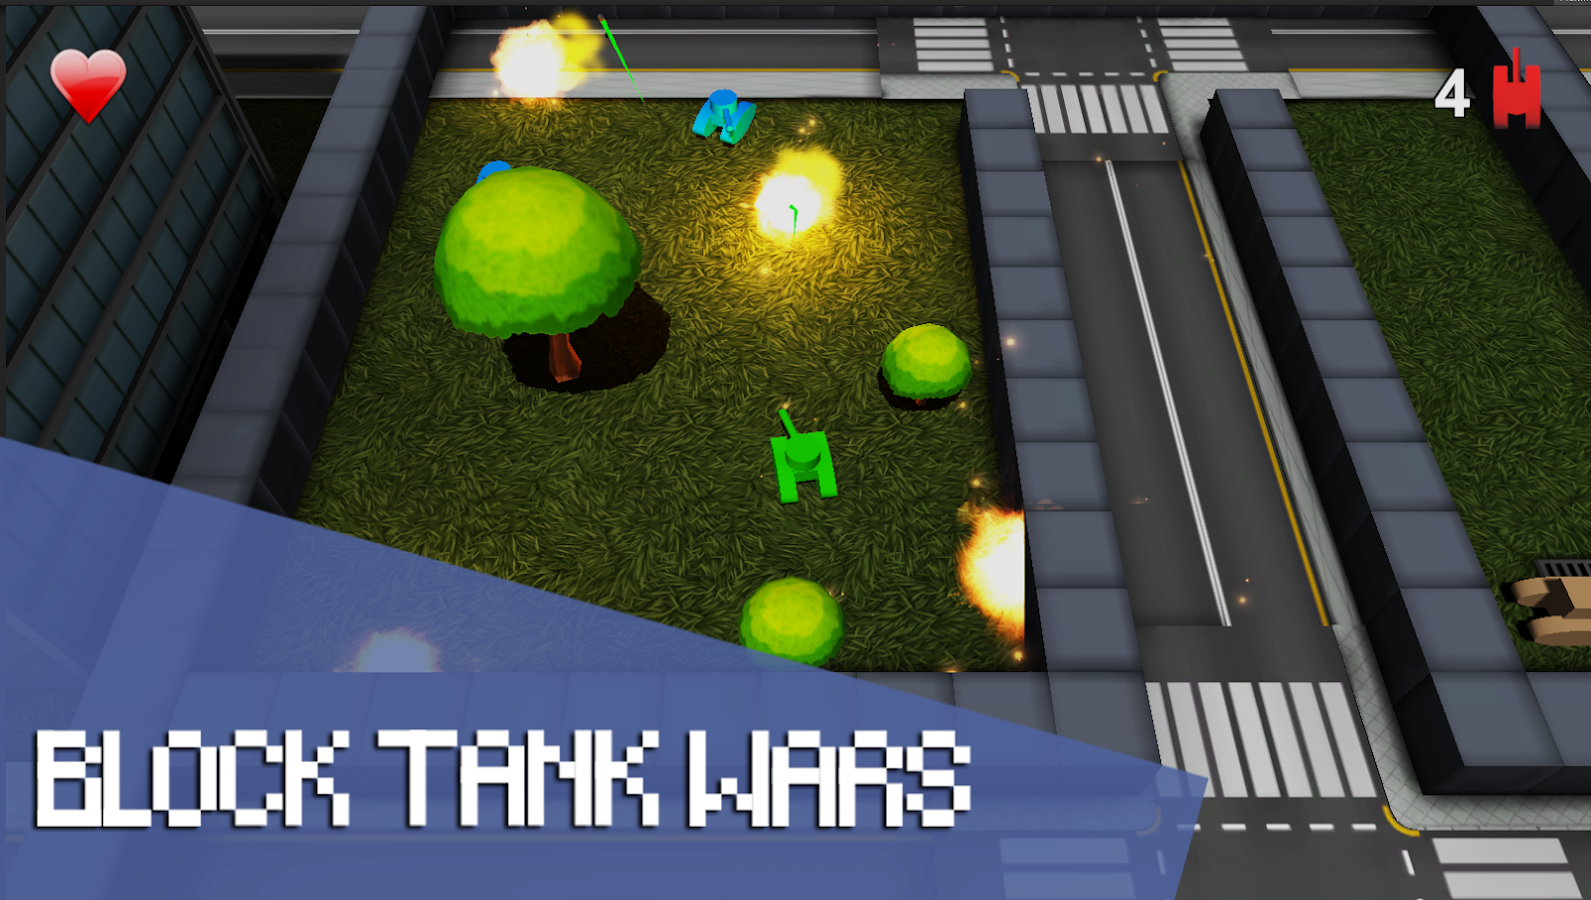 Block Tank Wars Screenshot 7